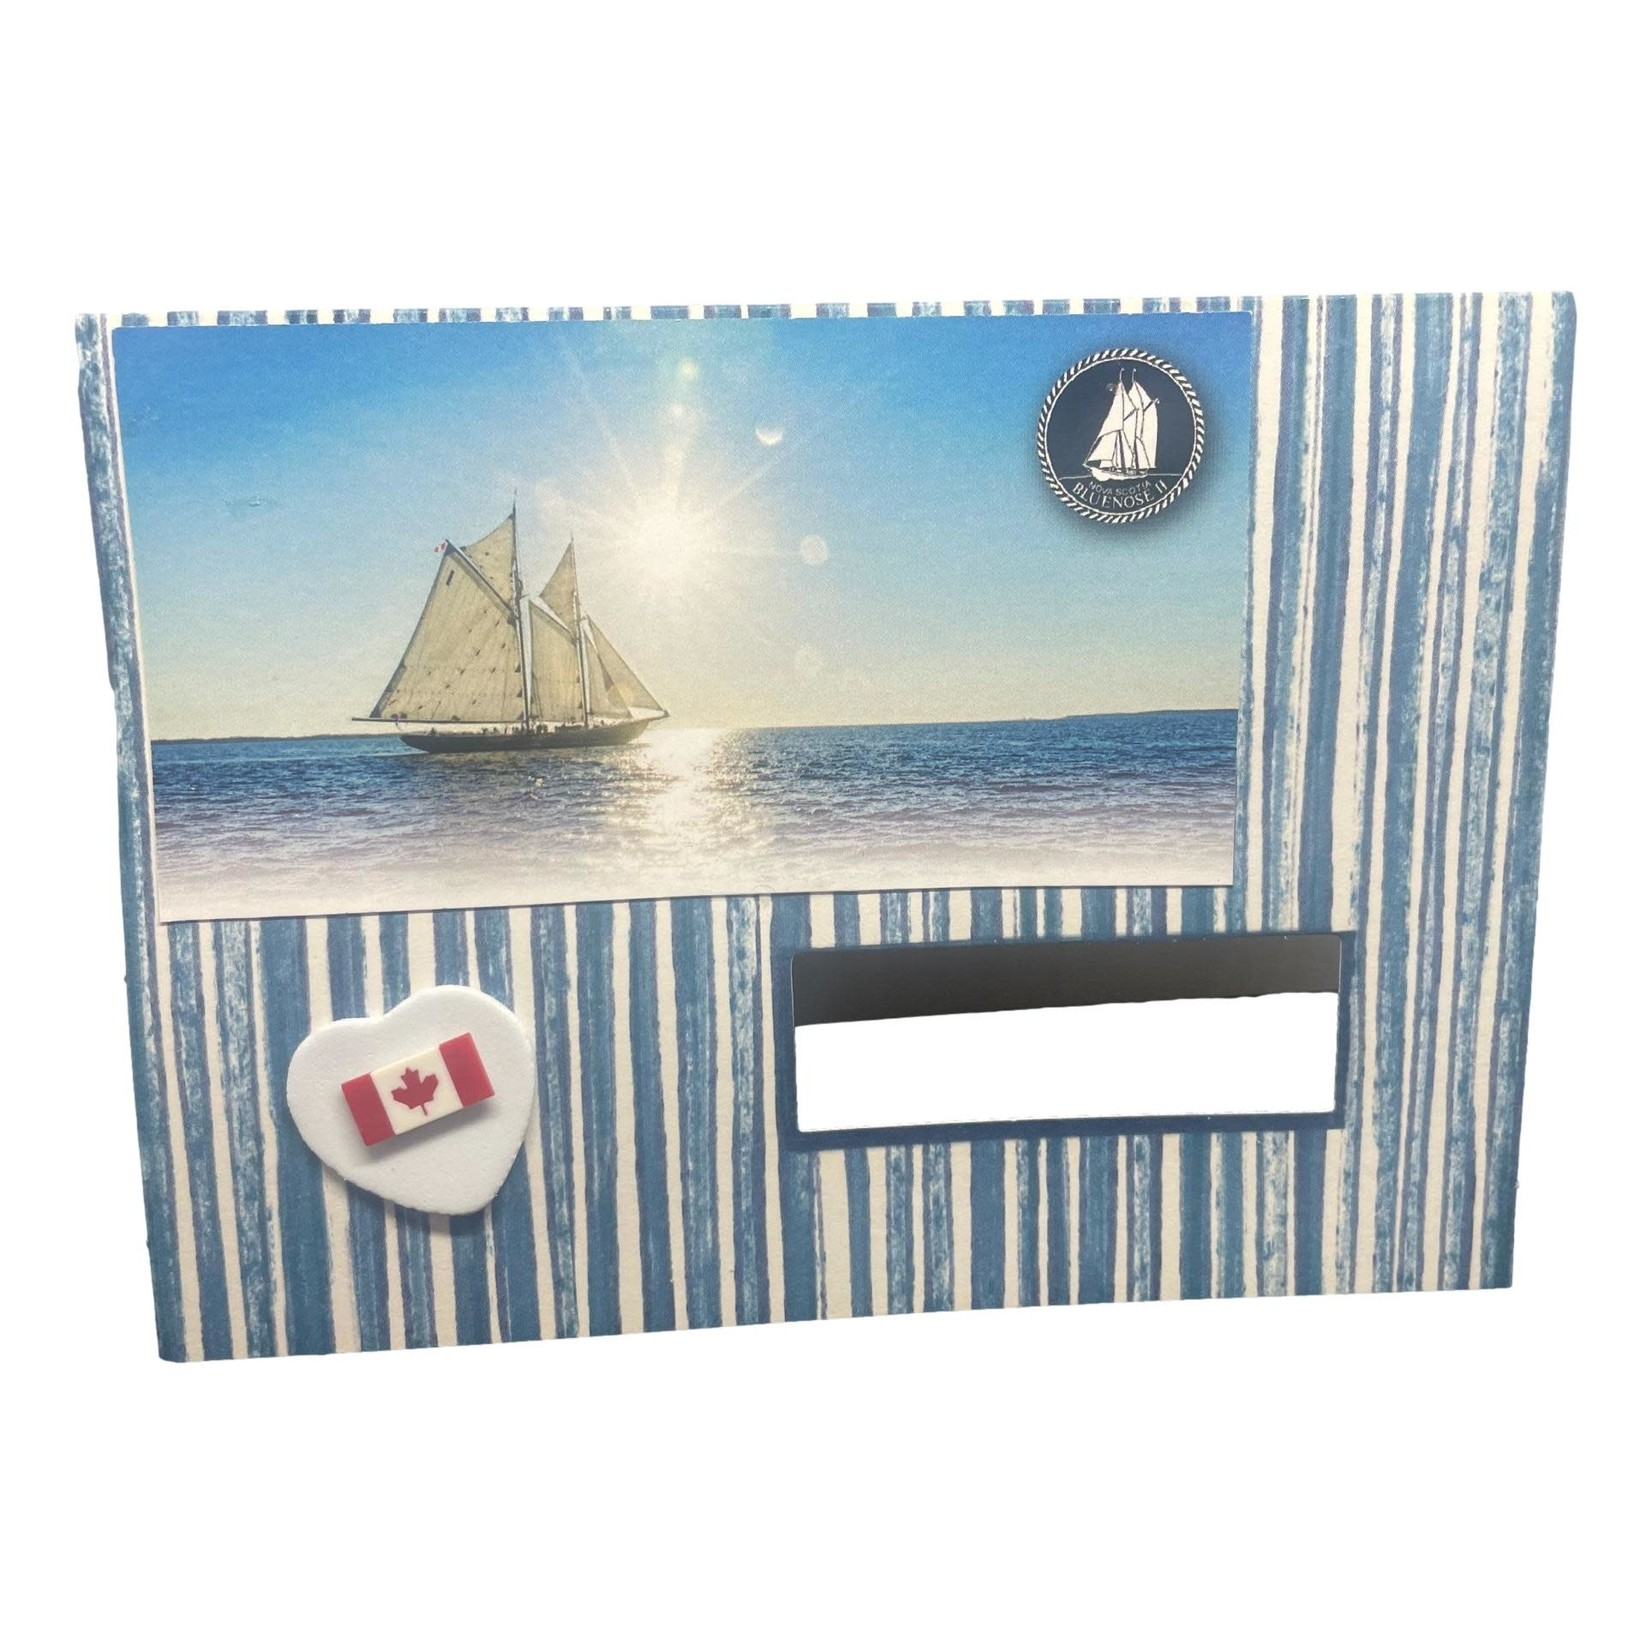 Off The Wall Gallery Bluenose II Ship Note Card